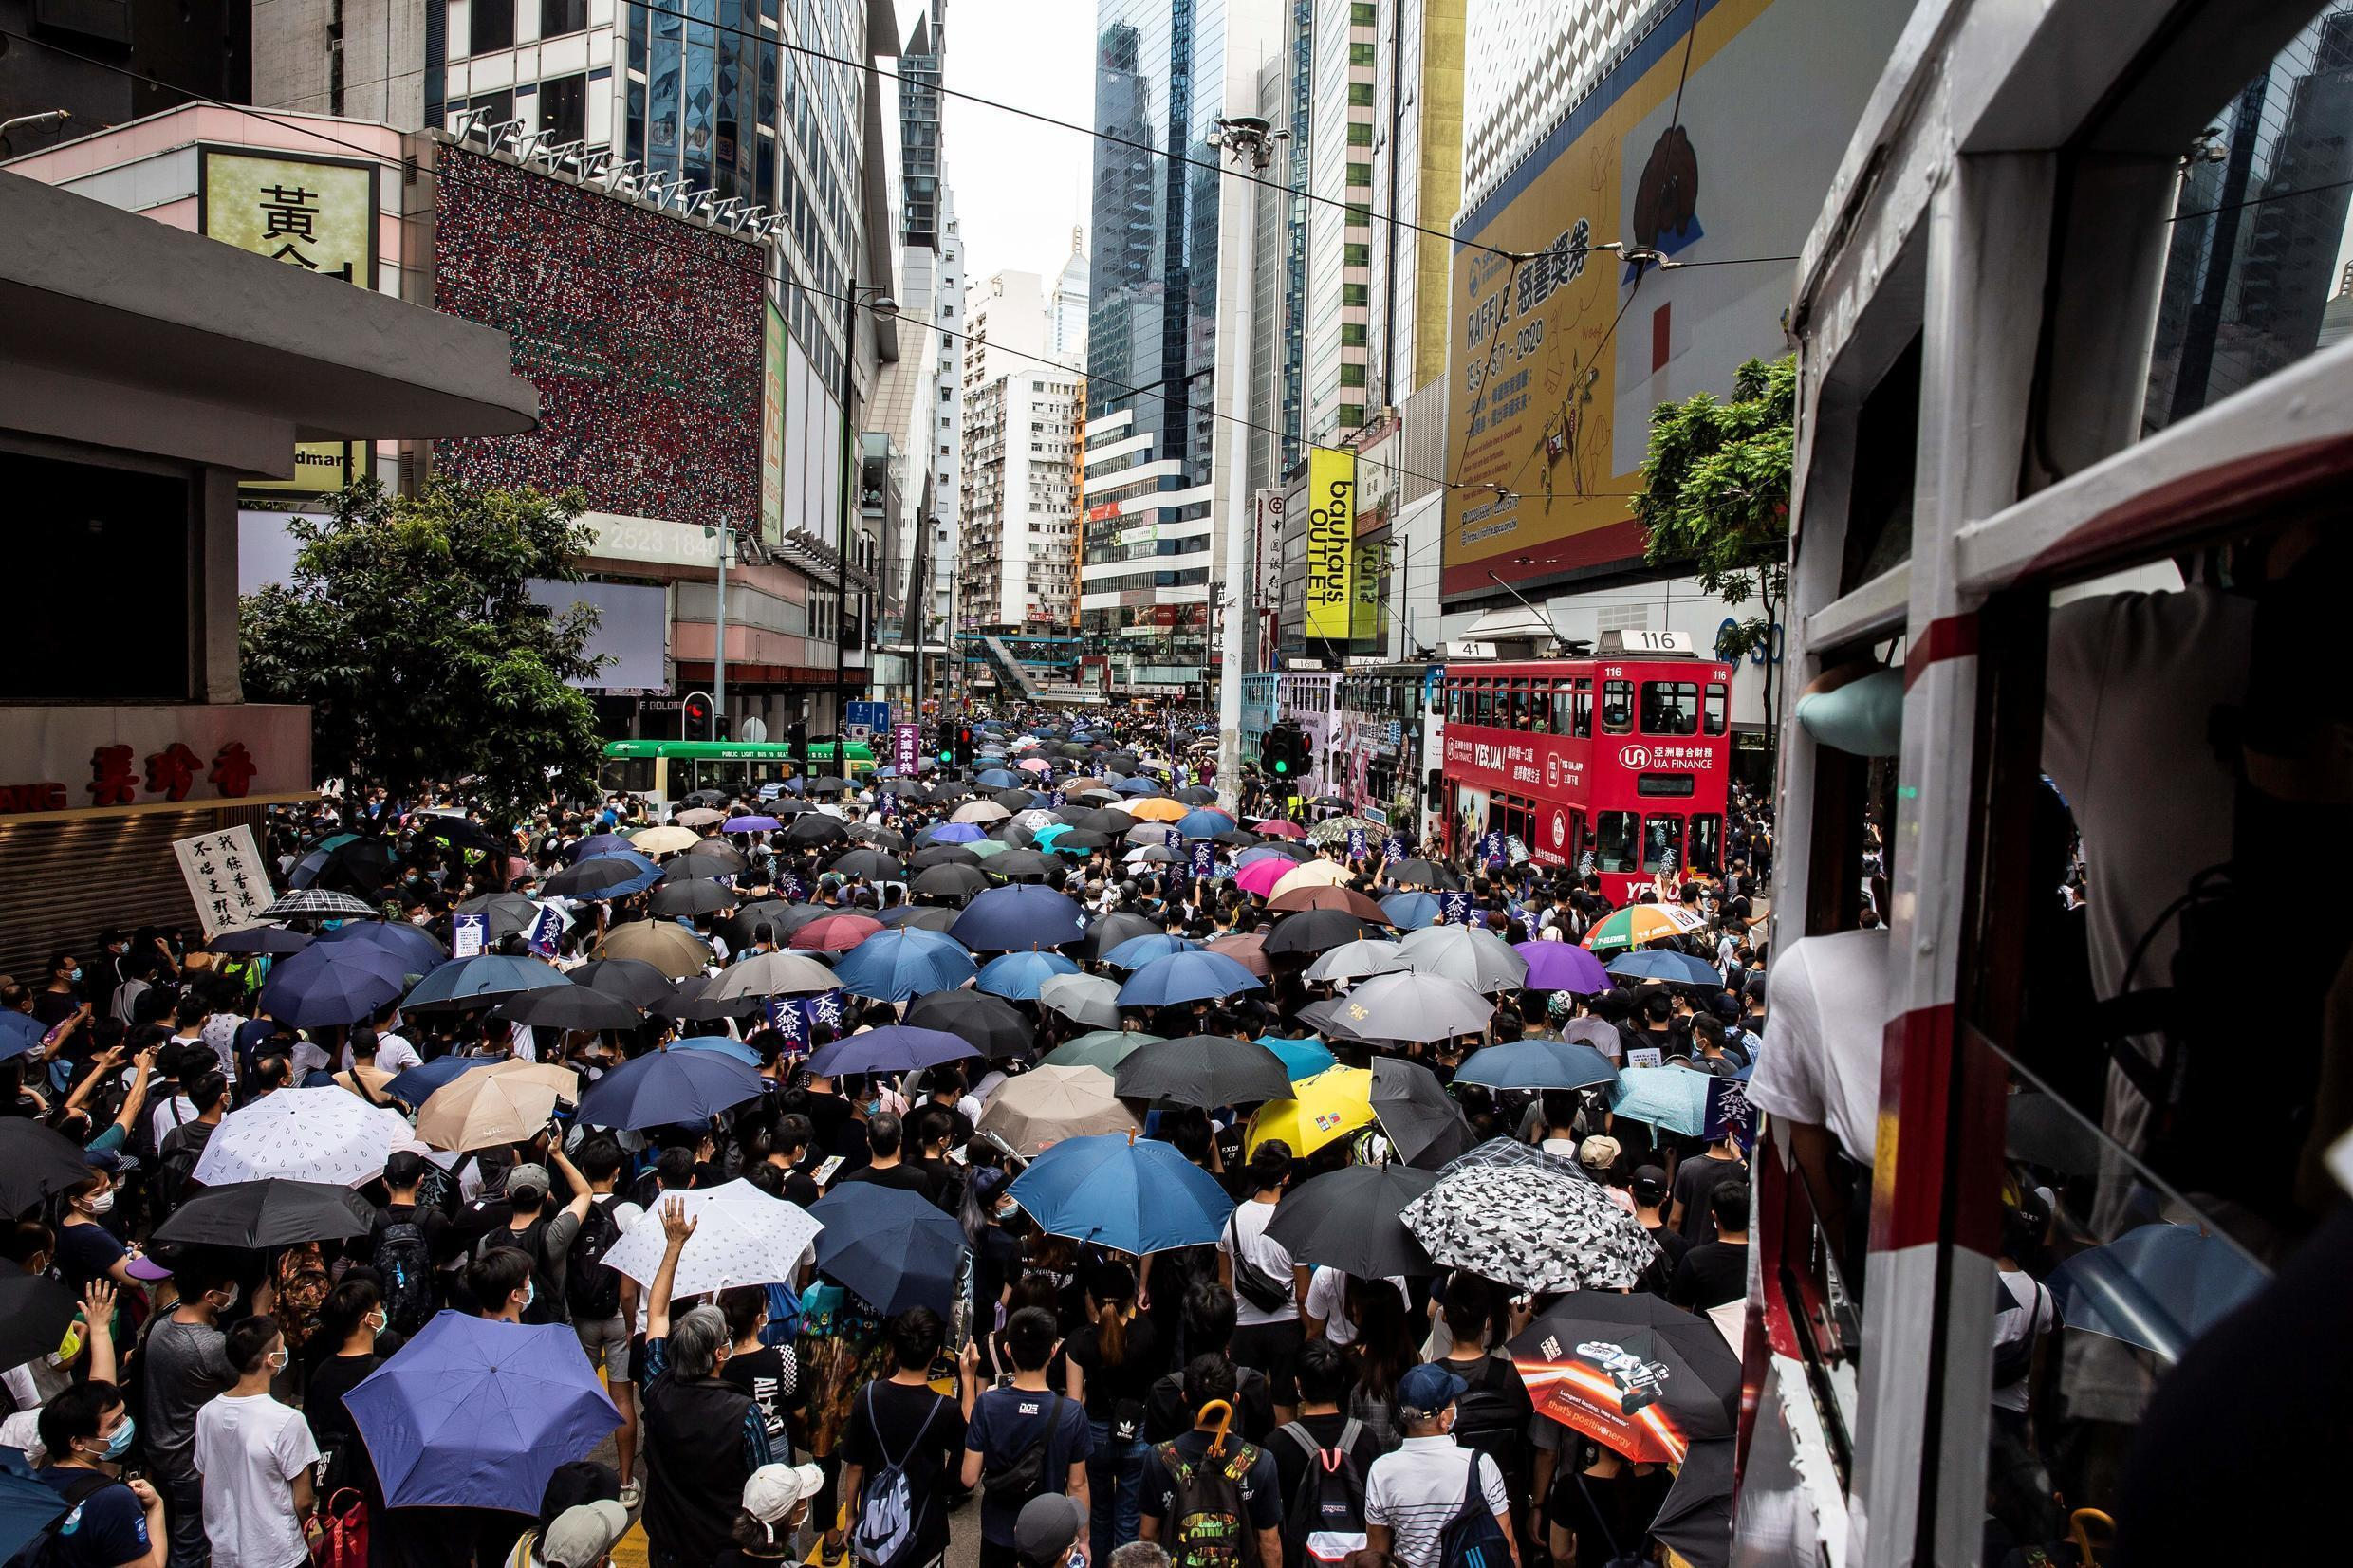 Pro-democracy protesters gather in the Causeway Bay district of Hong Kong to rally against Beijing's plan to introduce new security legislation in the city